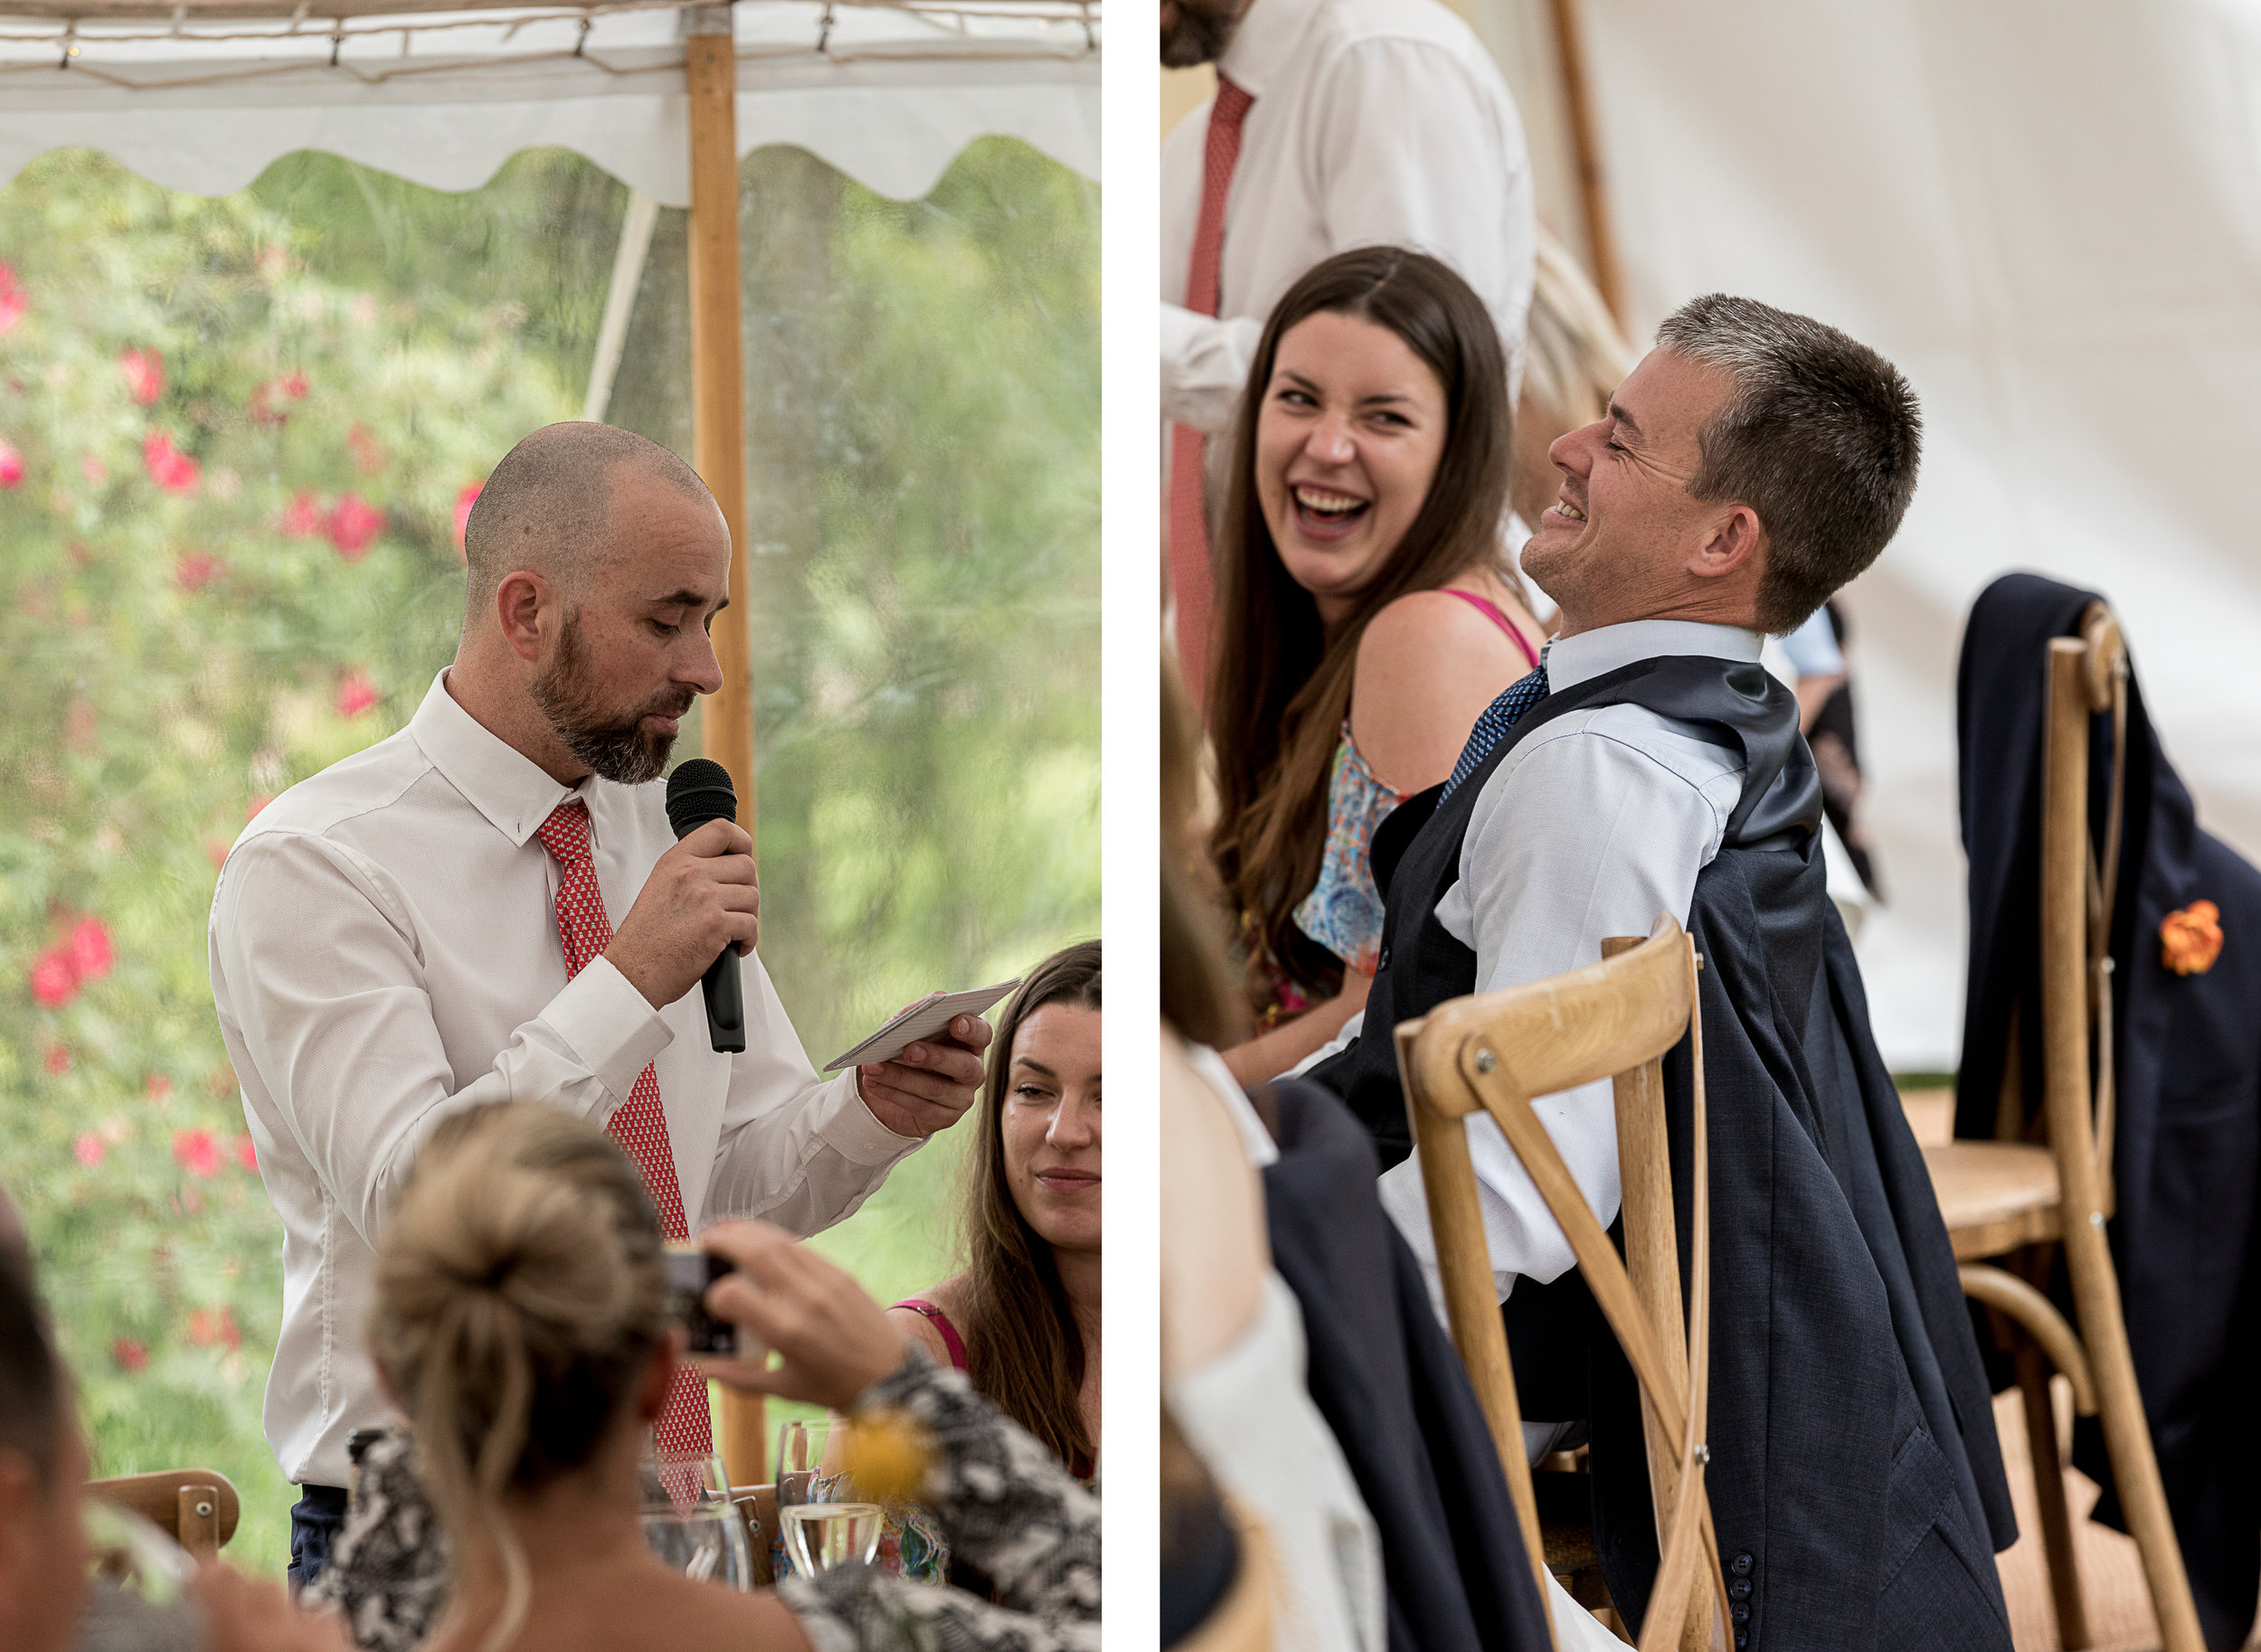 english-wedding-photographer-laughing-during-speeches-at-groom.jpg